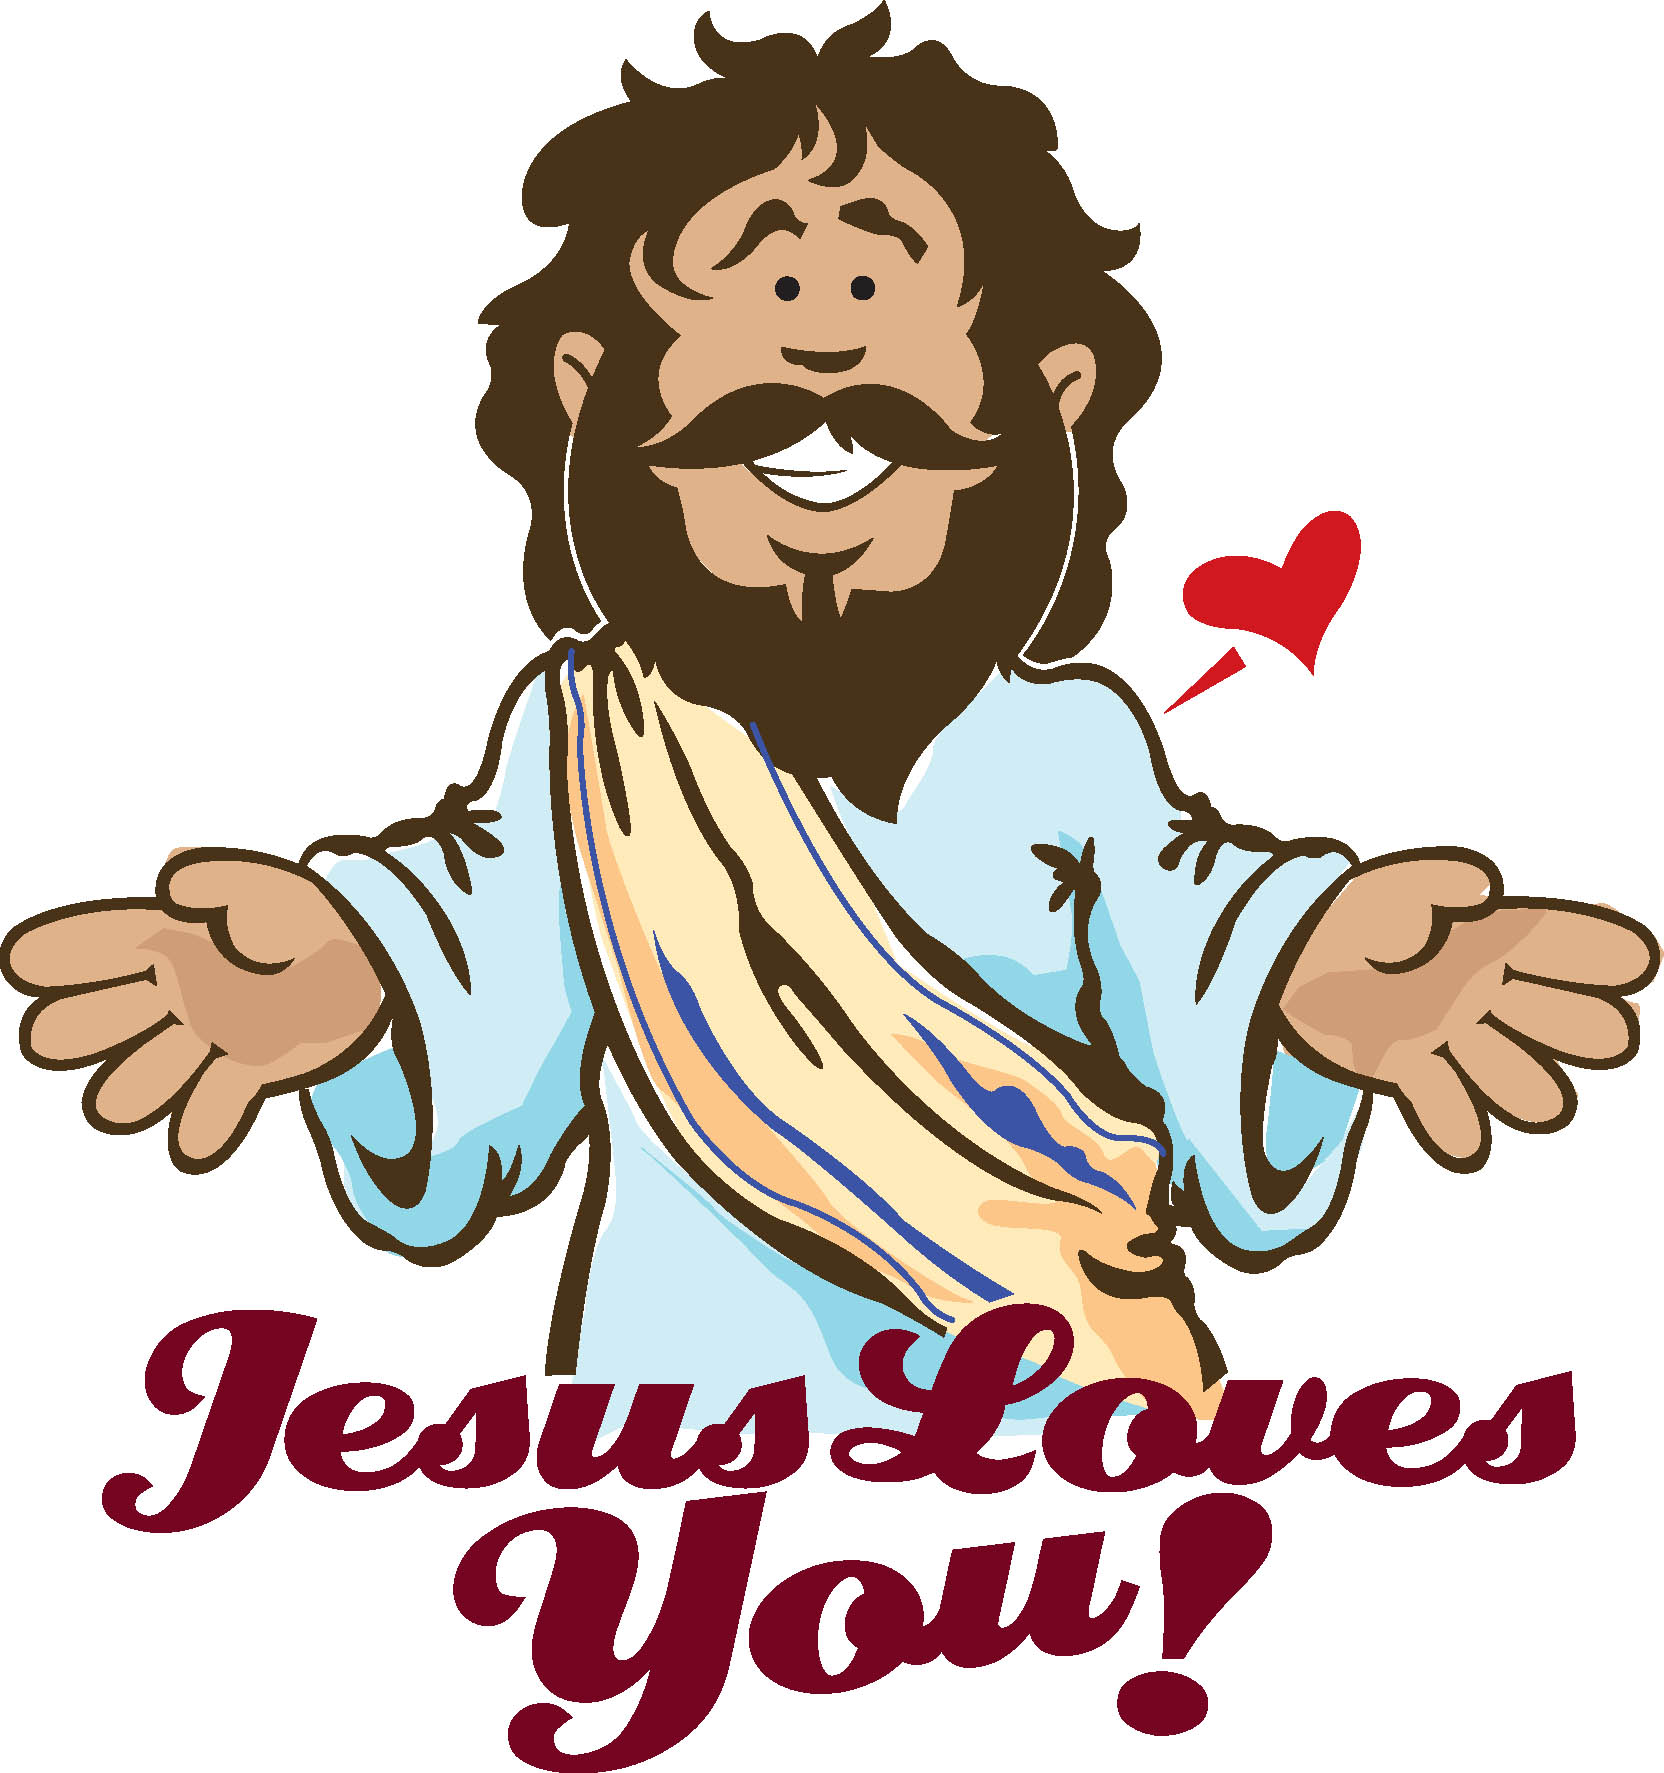 Jesus with with us clipart image download Jesus Loves You Clipart image download